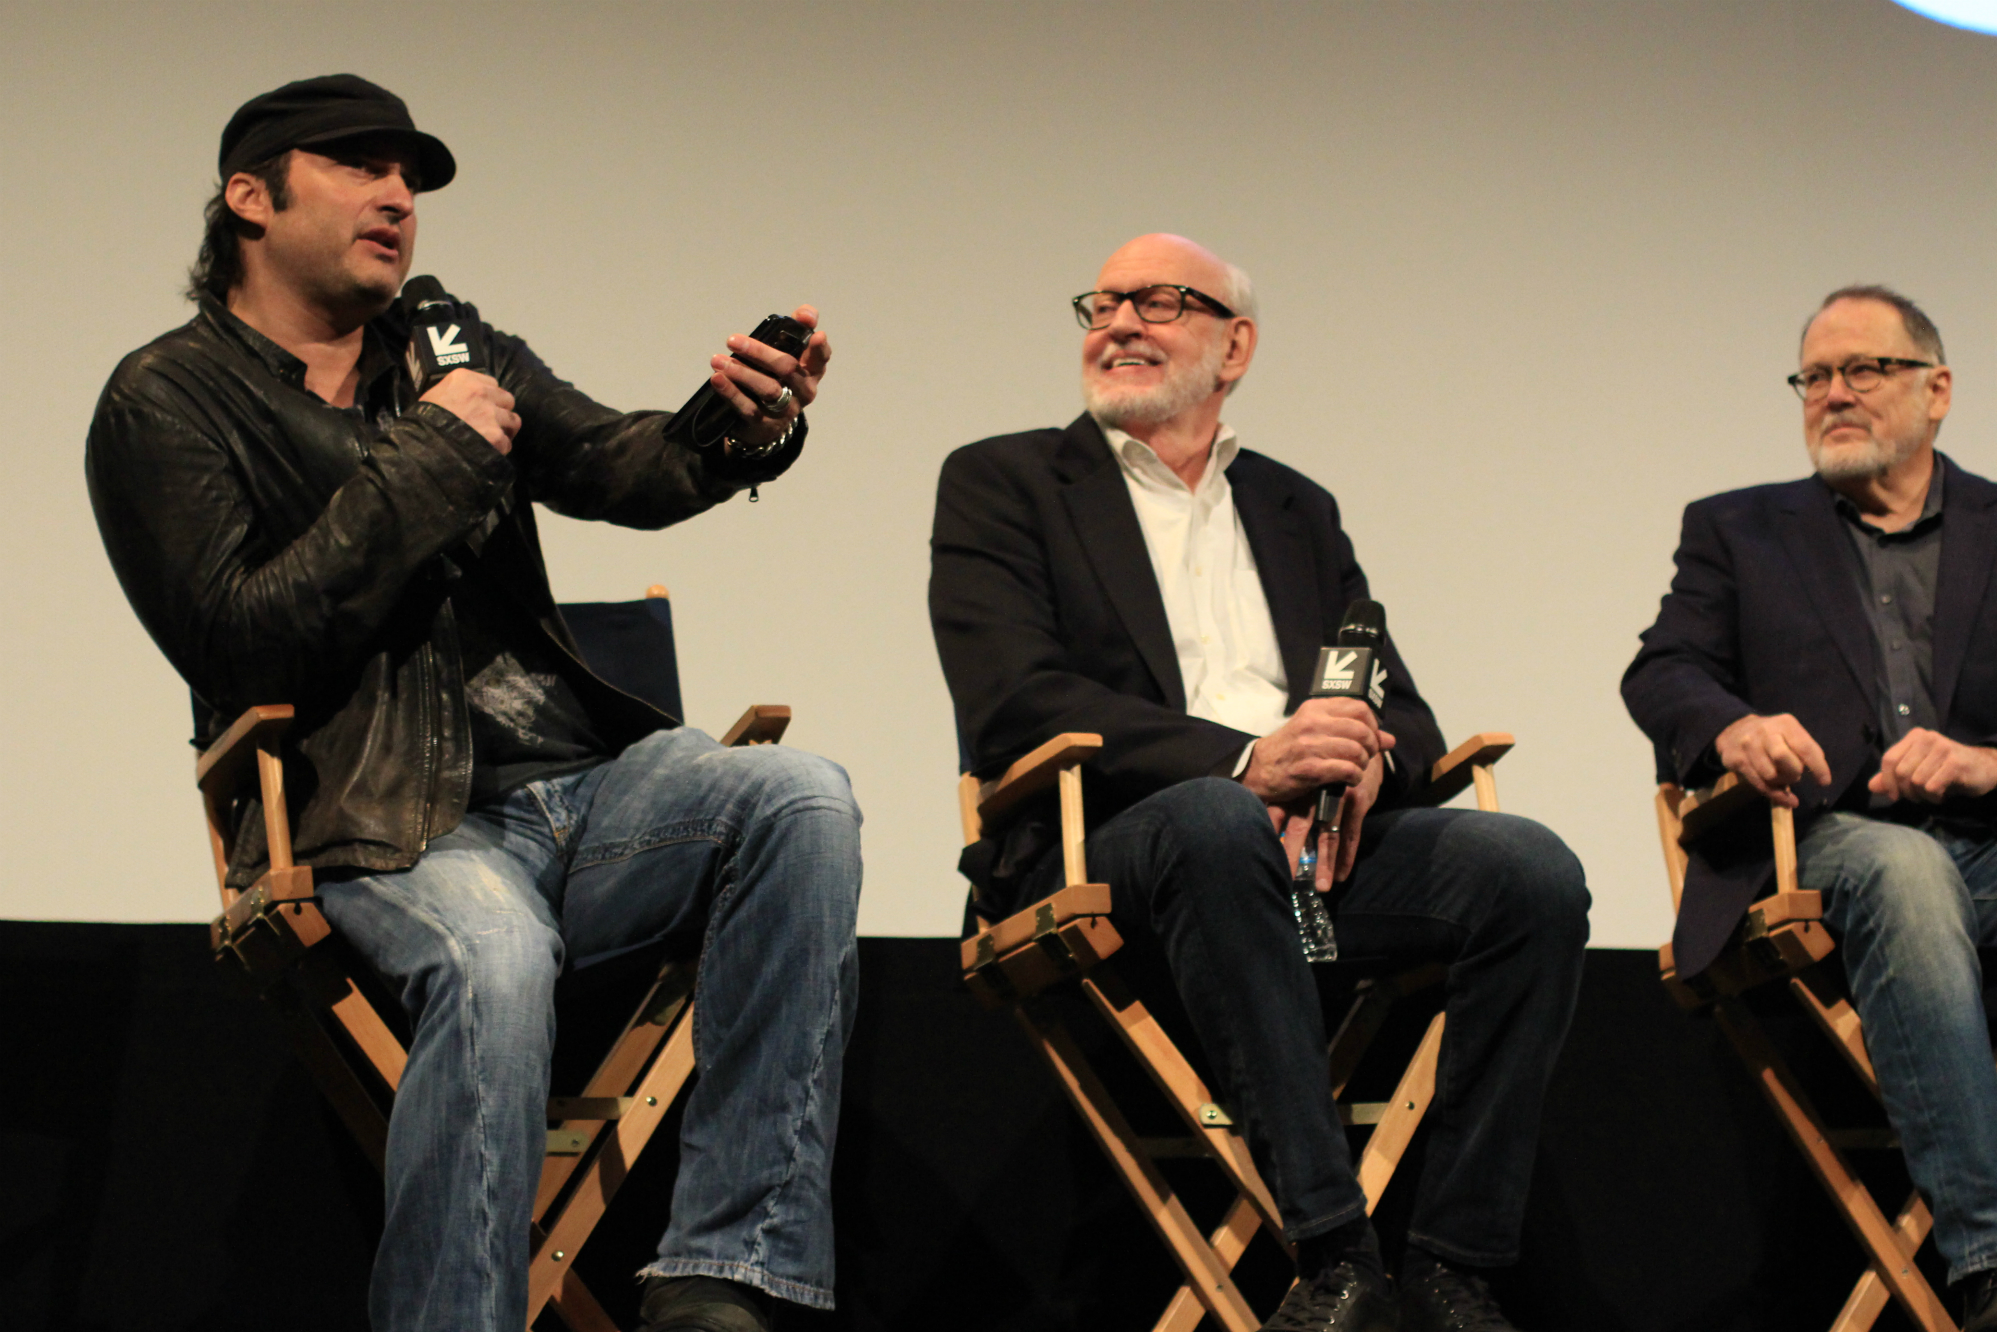 Robert Rodriguez, Frank Oz, and Dave Goelz // Muppet Guys Talking // Photo by Heather Kaplan